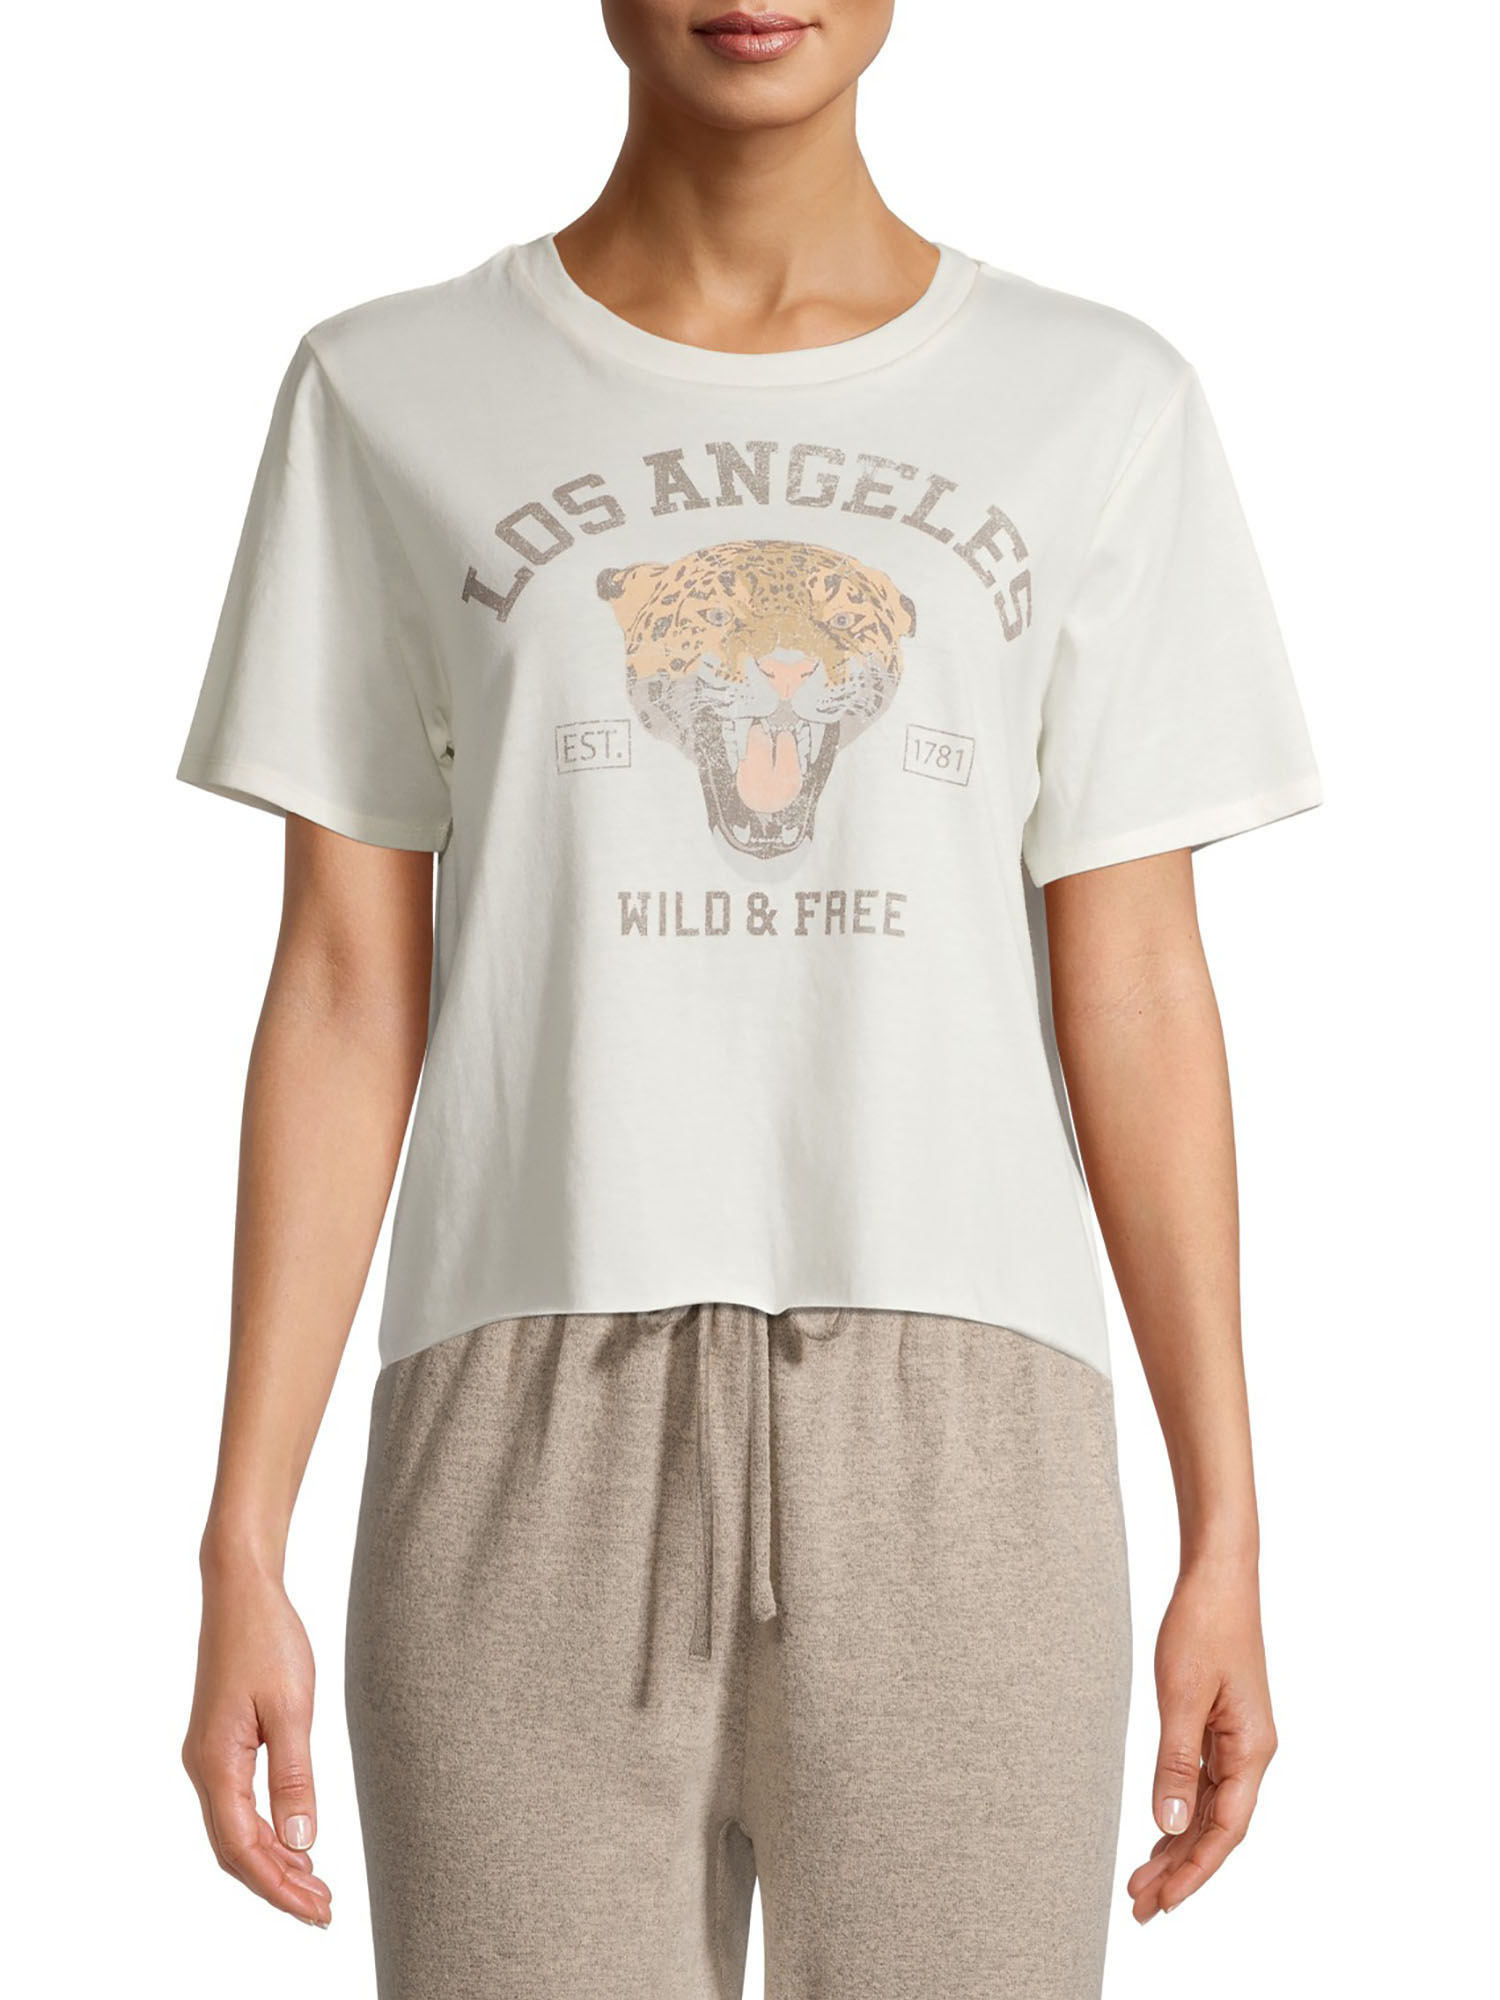 A graphic t-shirt with a tiger that says Los Angeles, wild and free